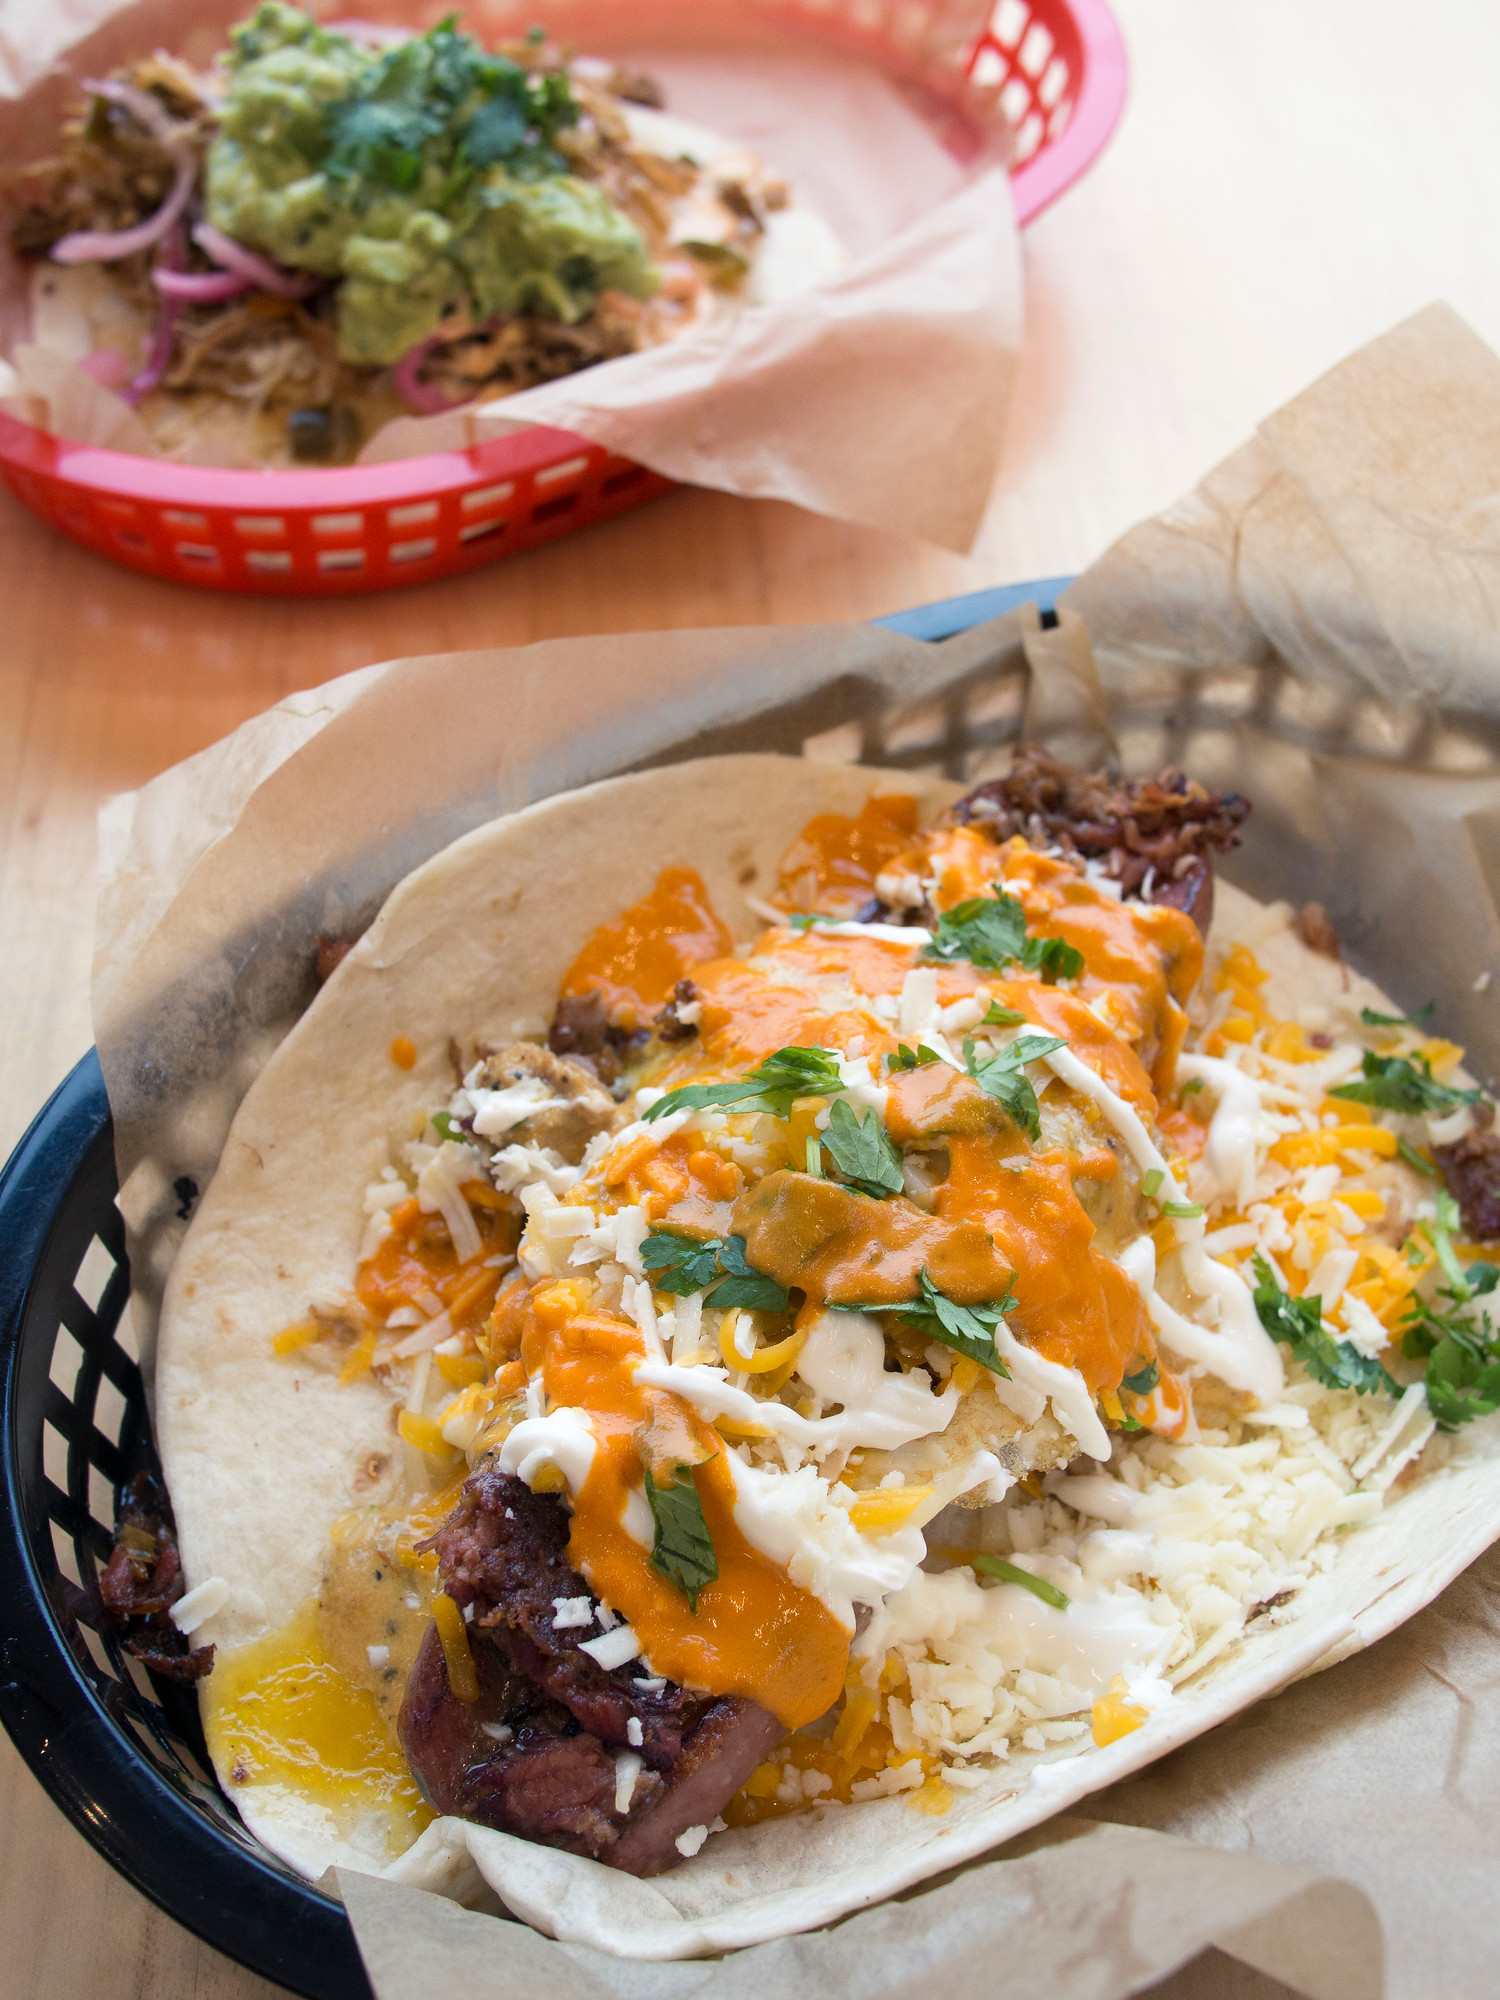 Torchy's secret menu - the Ace of Spades is one of seven secret tacos at Torchy's Tacos.